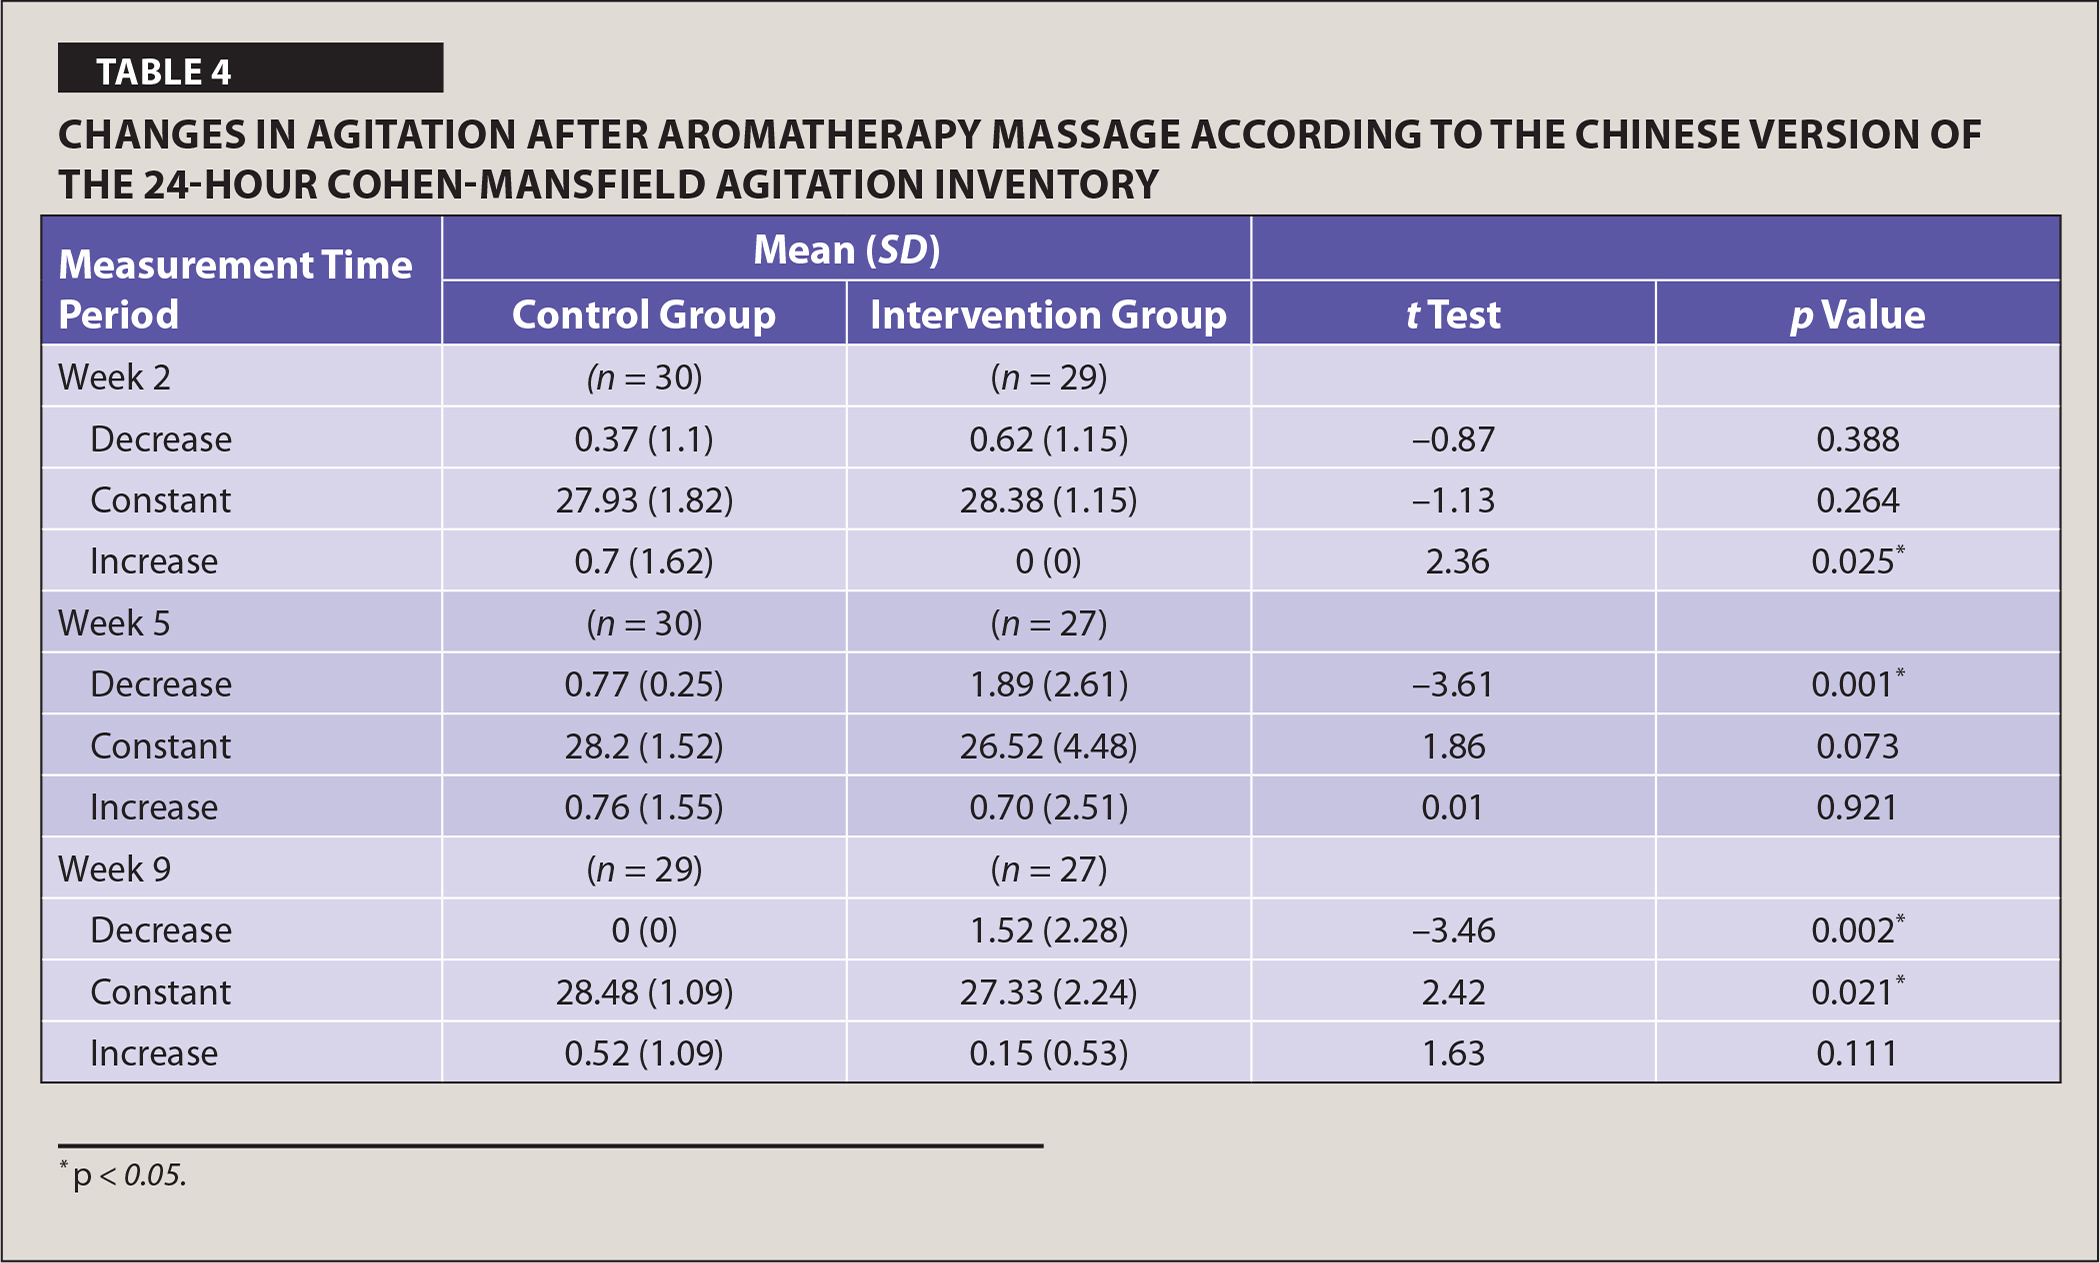 Changes in Agitation After Aromatherapy Massage According to the Chinese Version of the 24-Hour Cohen-Mansfield Agitation Inventory